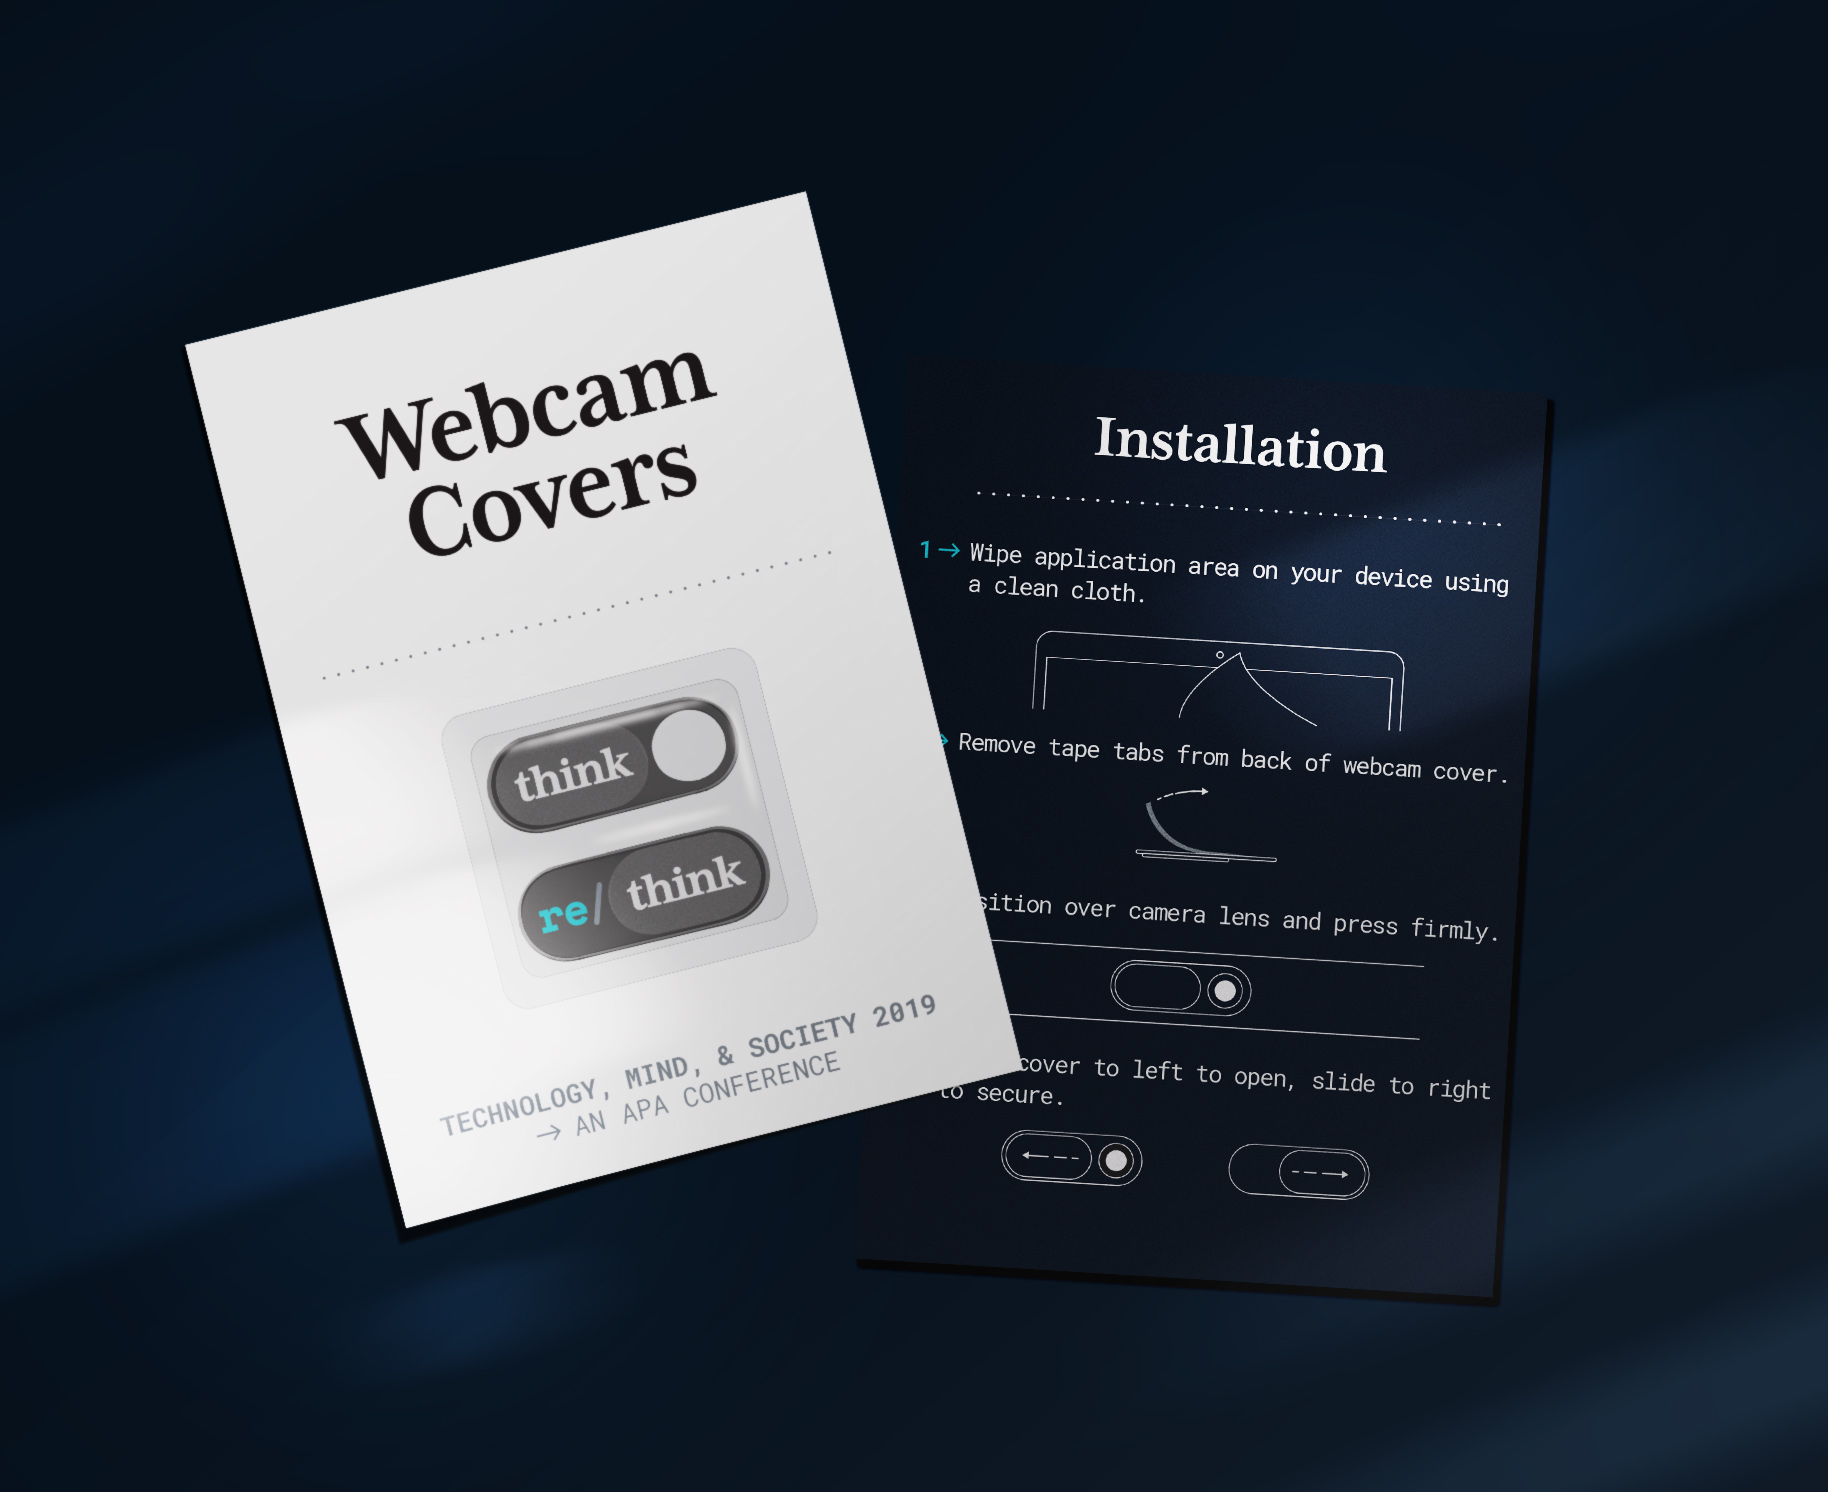 Custom webcam covers gifted to conference attendees